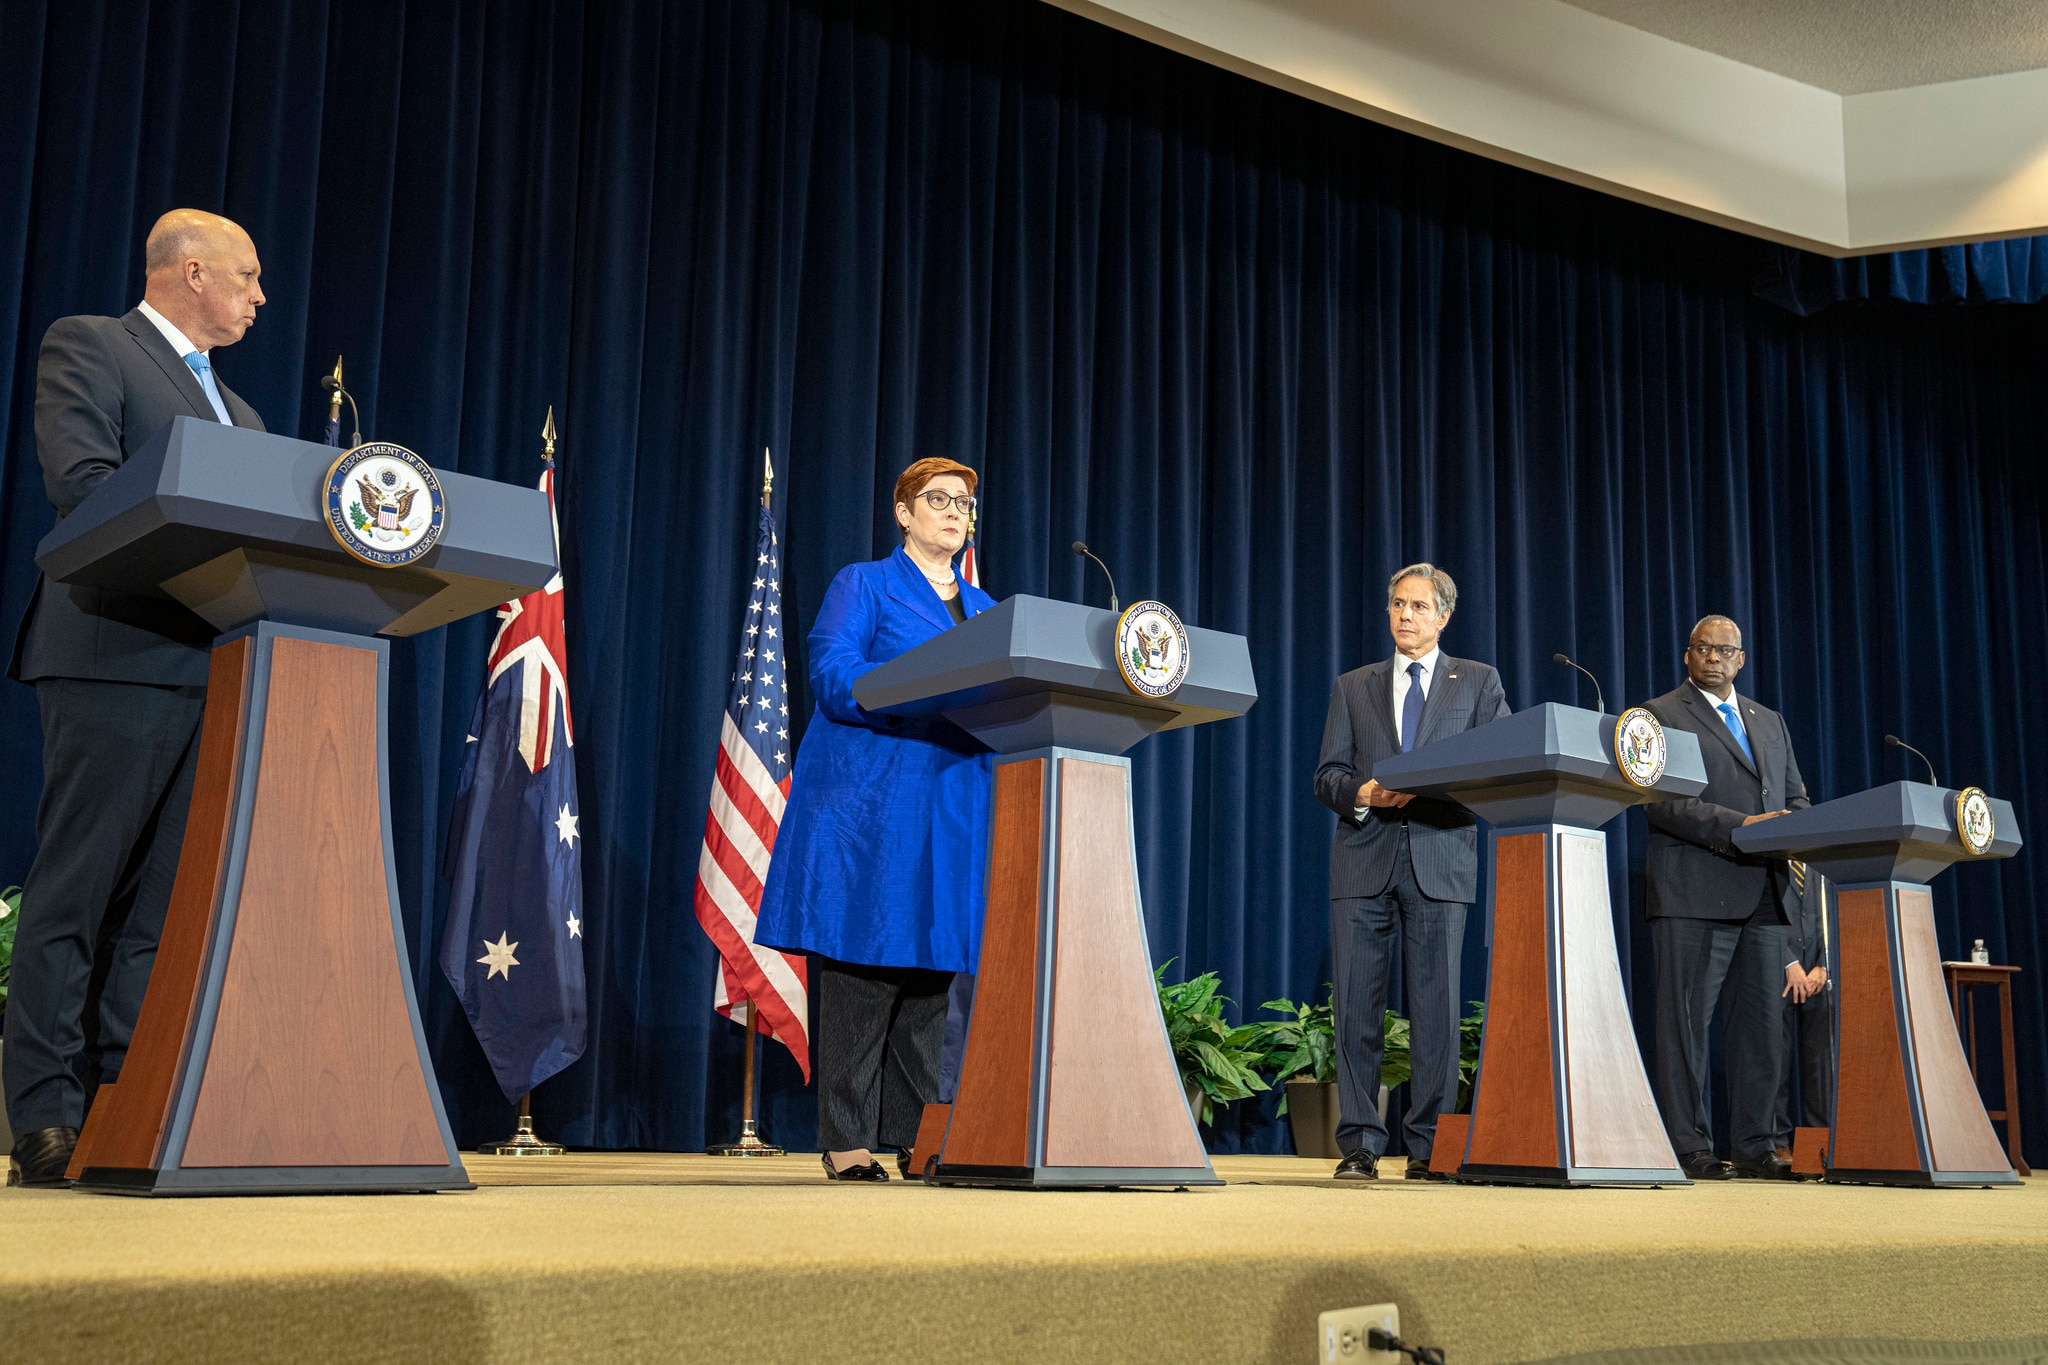 Secretary Blinken Holds A Joint Press Conference With Secretary Of Defense Lloyd Austin, Australian Foreign Minister Marise Payne, And Australian Defence Minister Peter Dutton